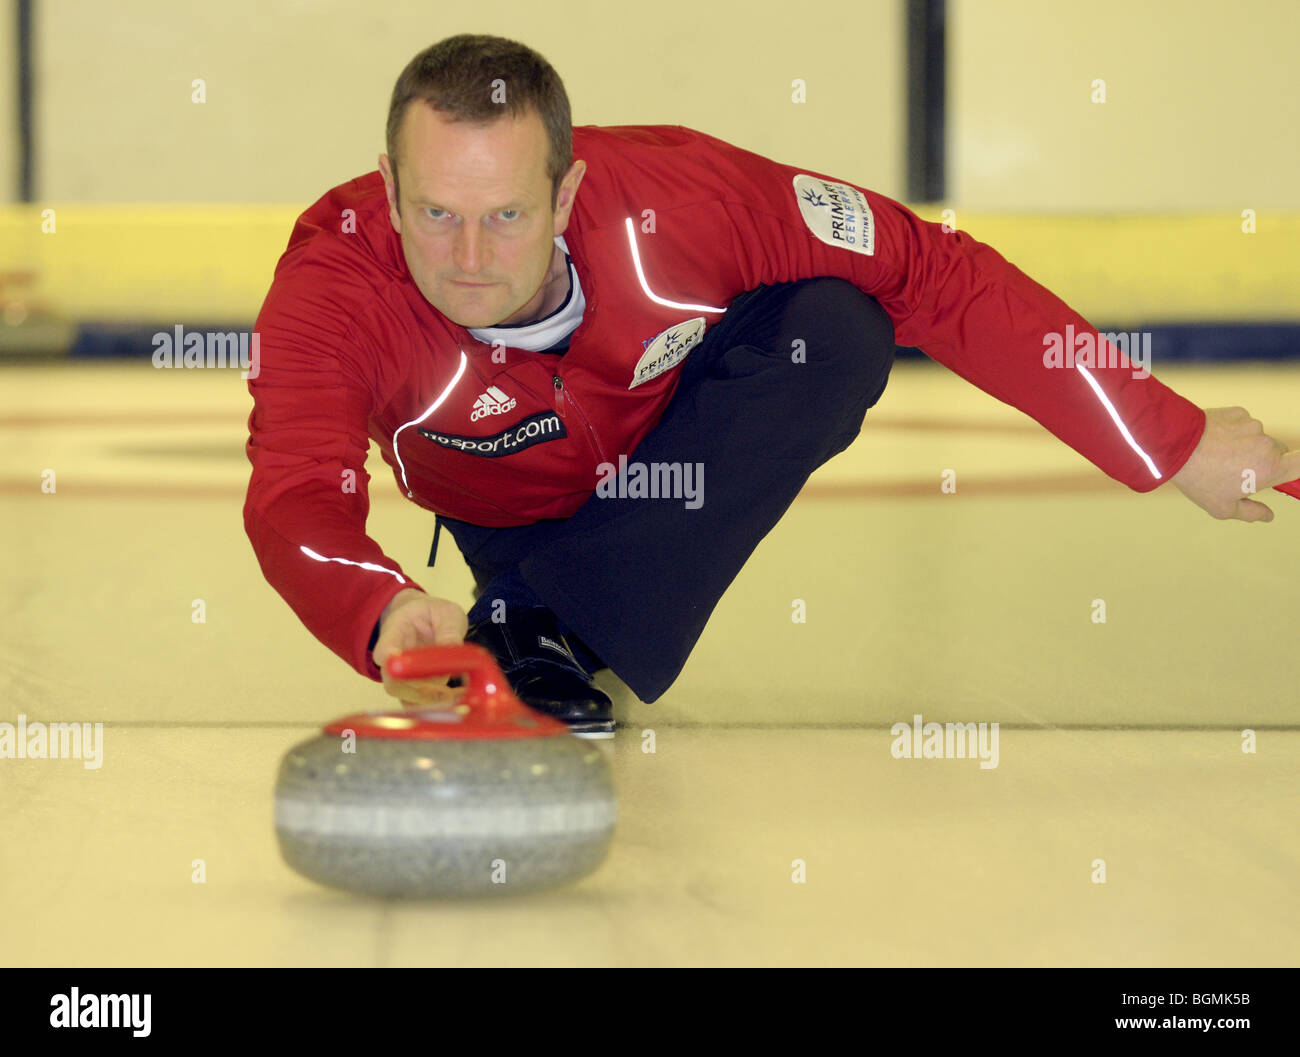 Peter Smith Team GB Men's Curling Team for Vancouver Winter Olympics 2010. Stock Photo